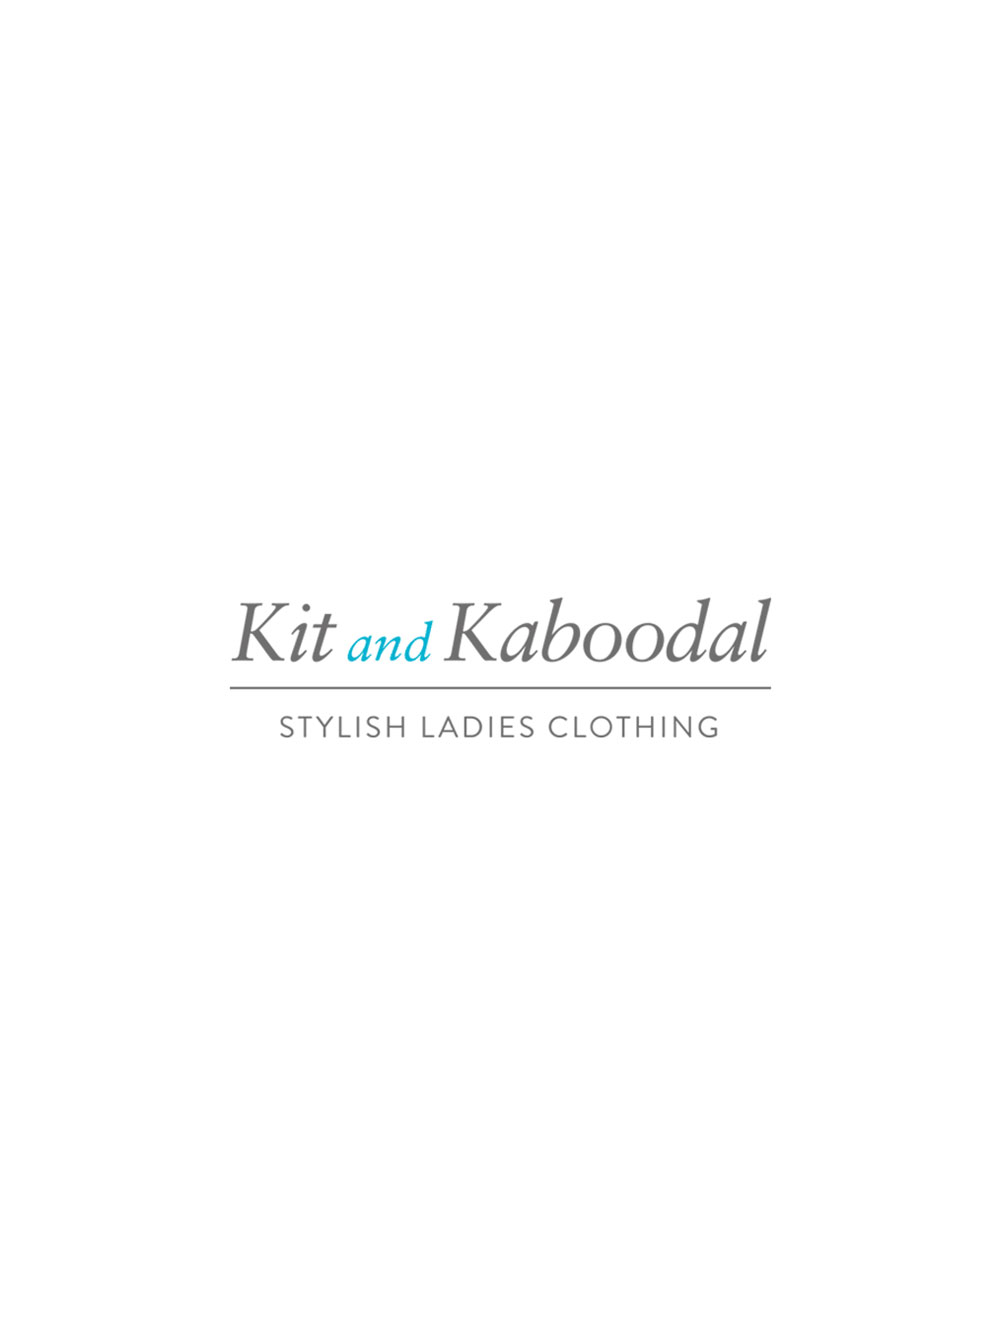 Kit and Kaboodal Jasmine Necklace Silver and Rose Gold